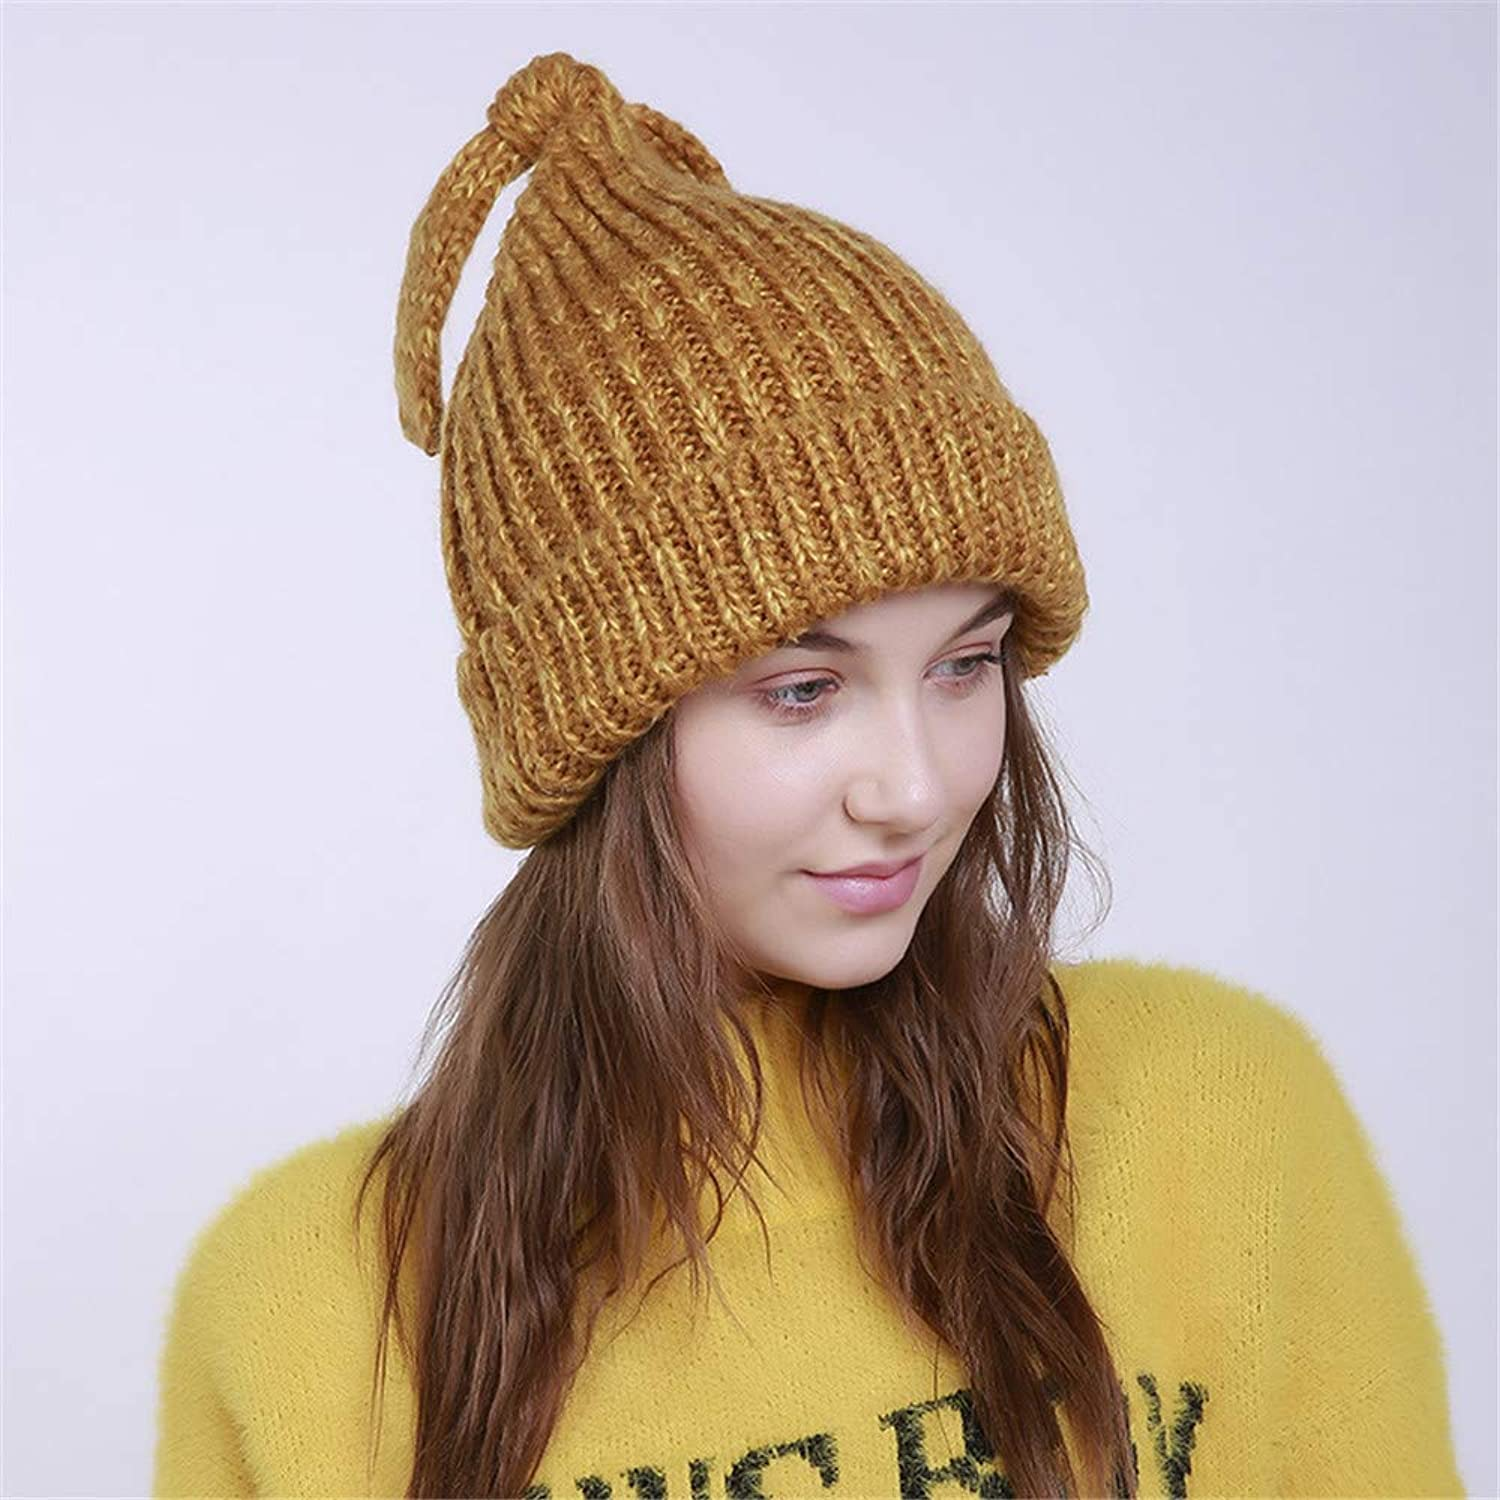 Rabbit Ear Womens Winter Knitting Wool Warm Hat Daily Slouchy Hats Fashion